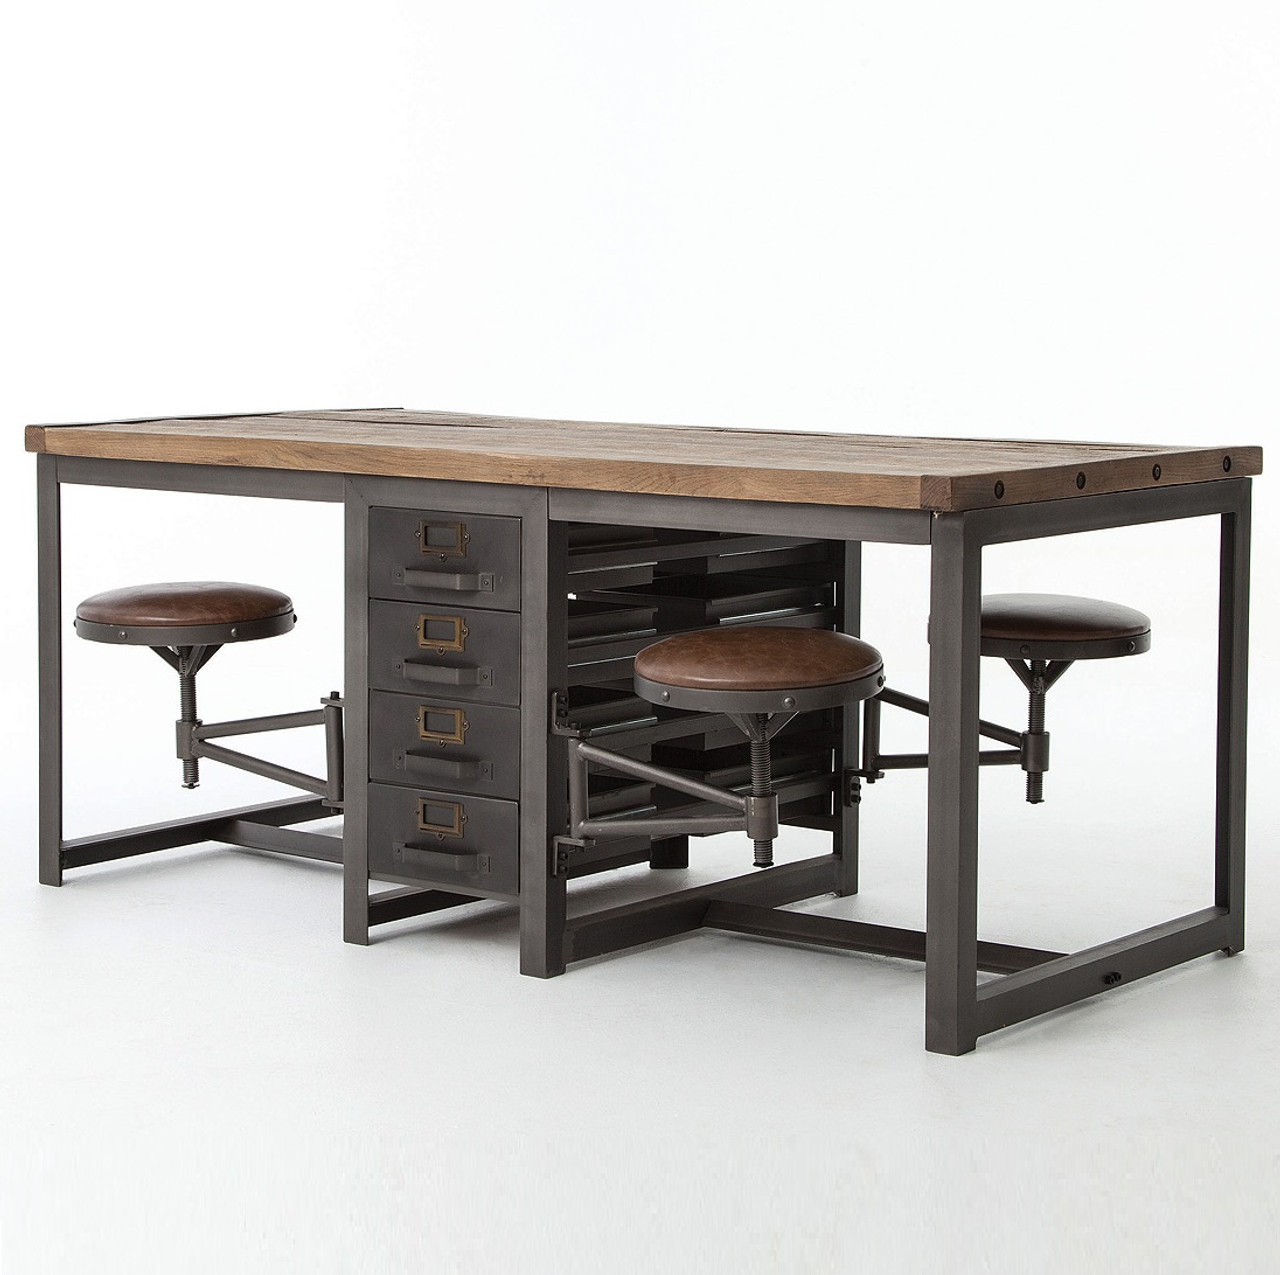 threshold table collection tiburon rustic industrial moe desk trim width item s home with height products sr coffee tiburoncoffee